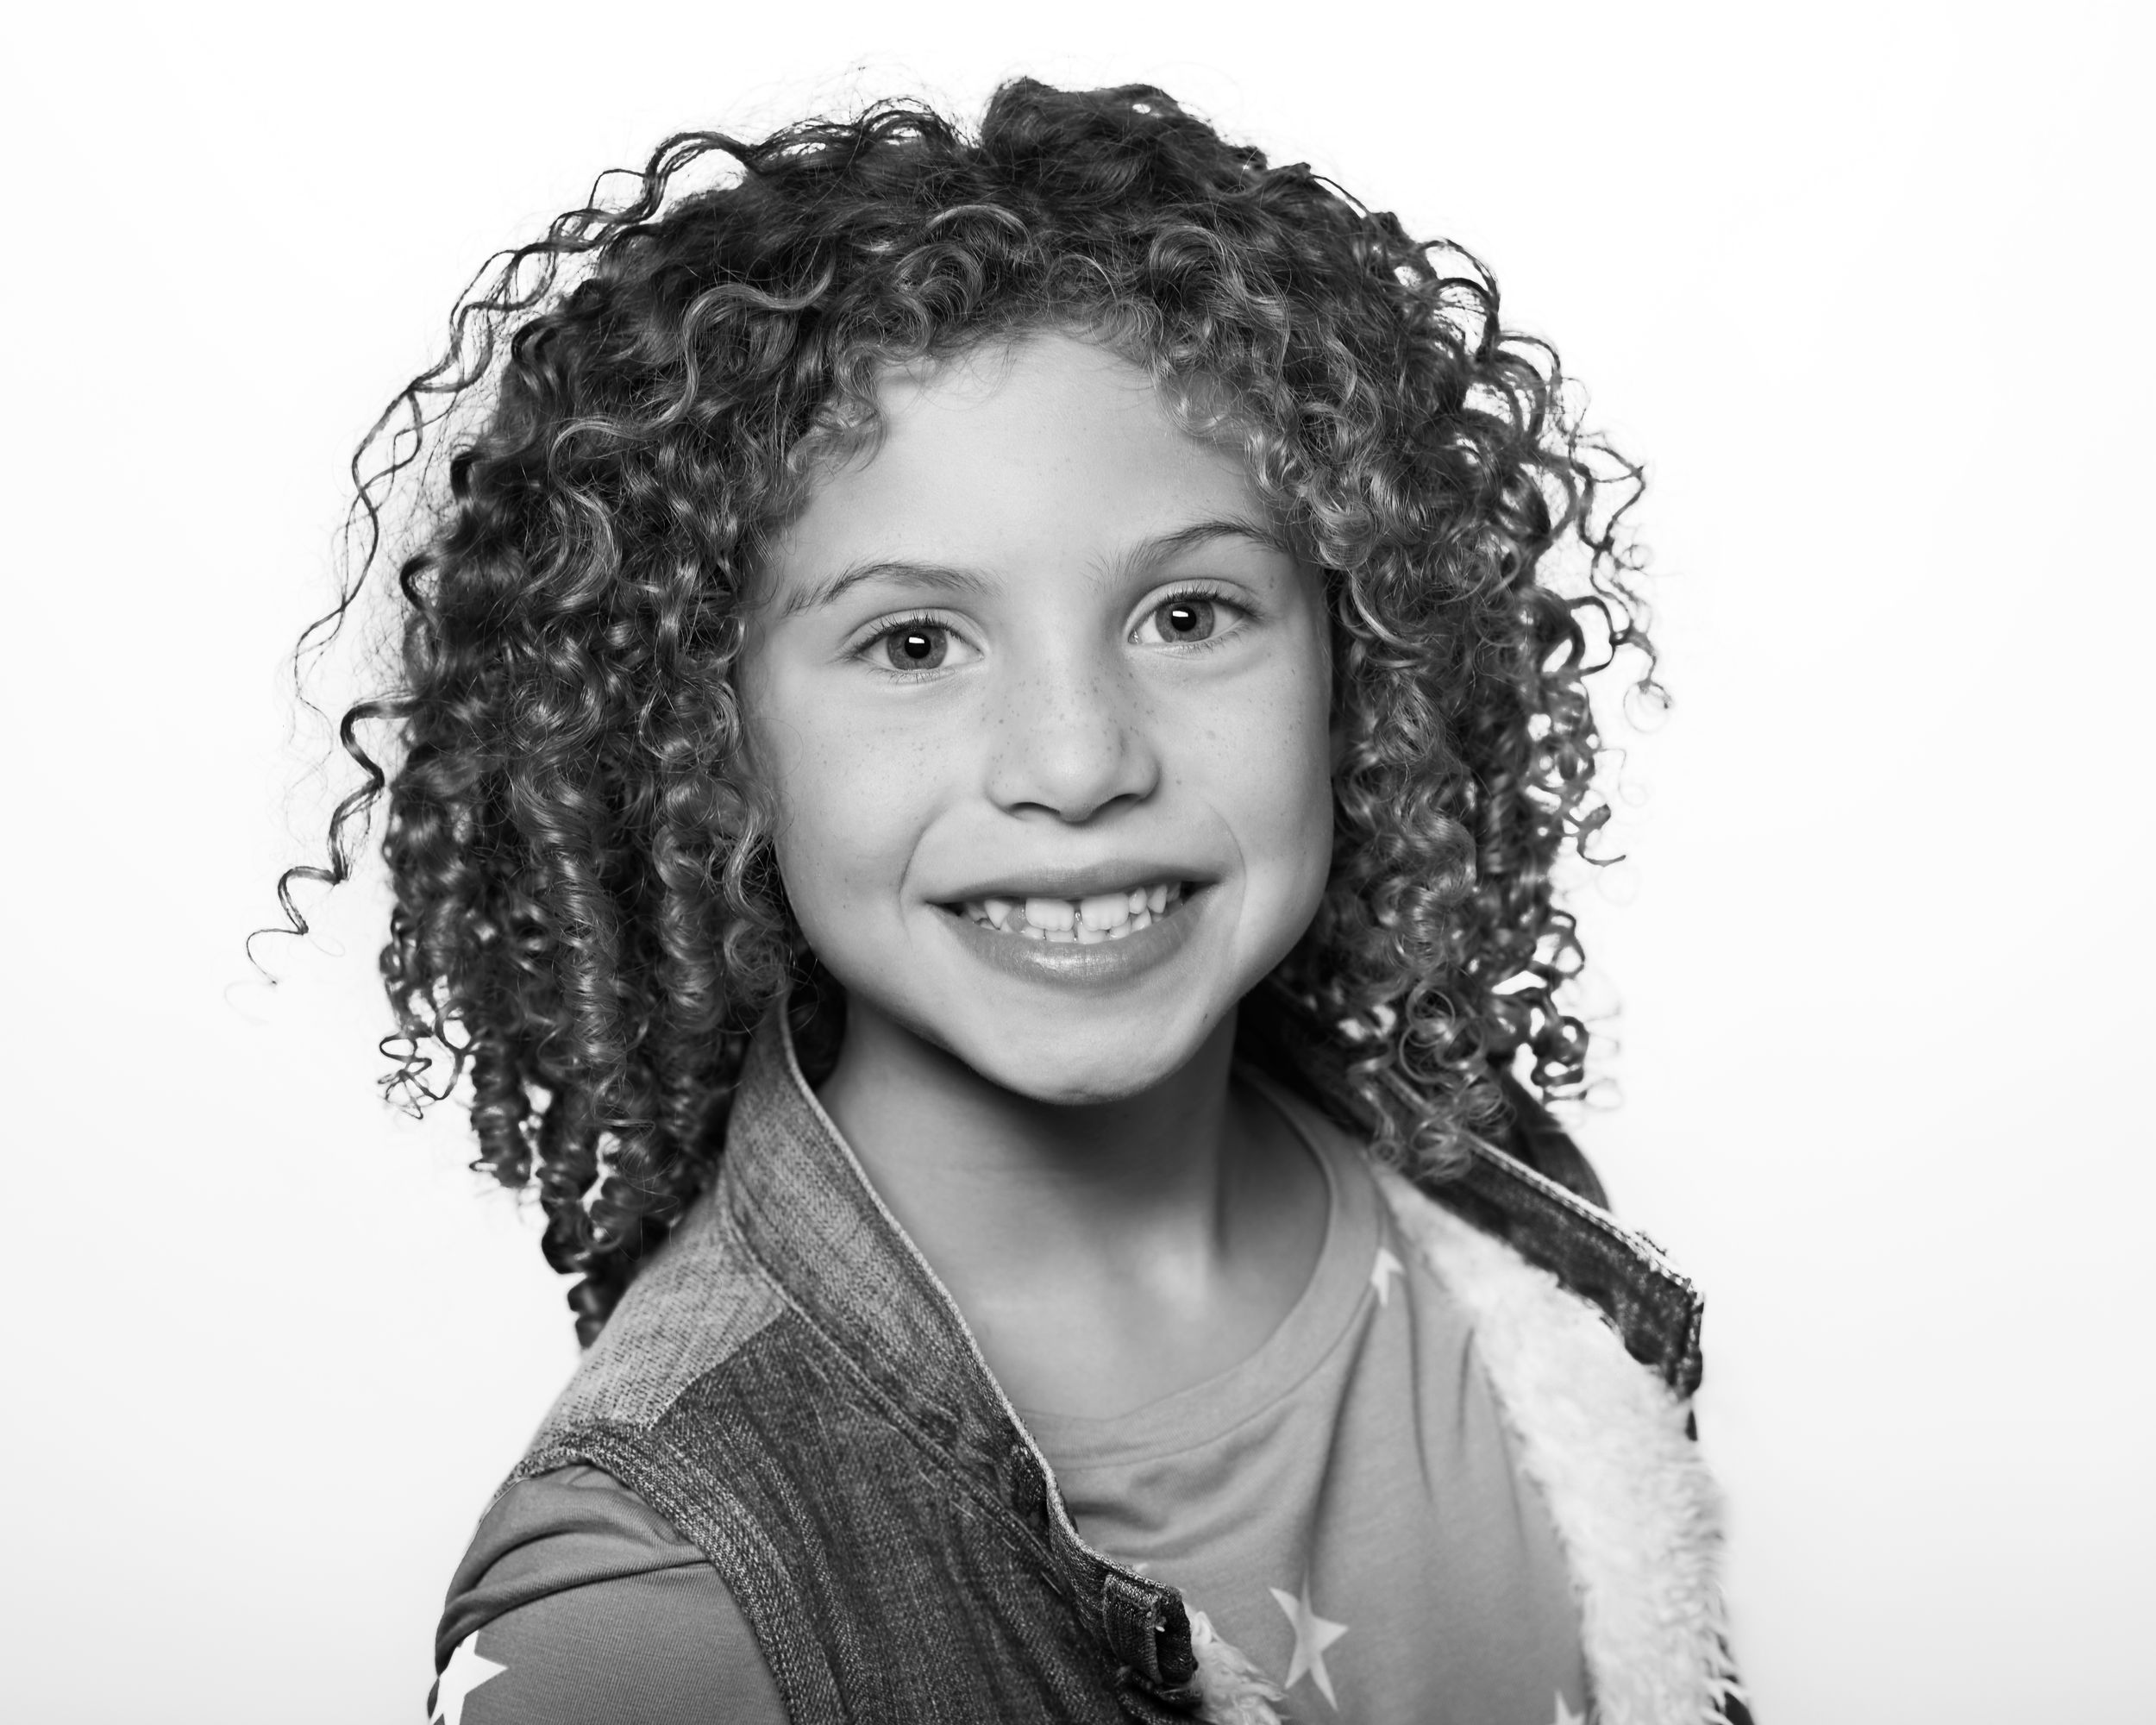 child model headshot